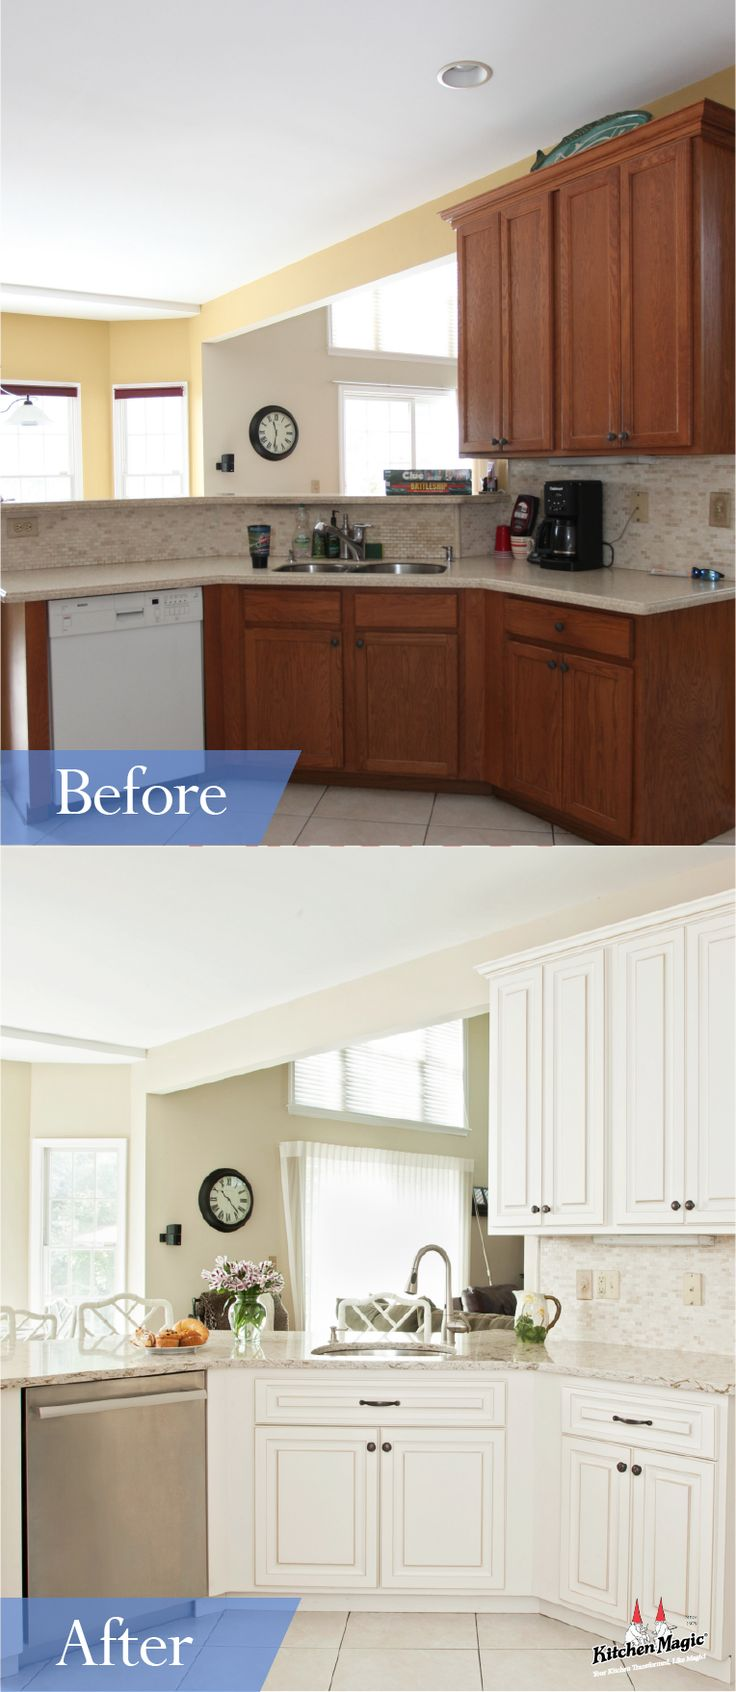 diy shaker impressive it renovation do add how furniture blog cabinet doors yourself blogs to full of cabinets refacing size remodel kitchen industrial make trim